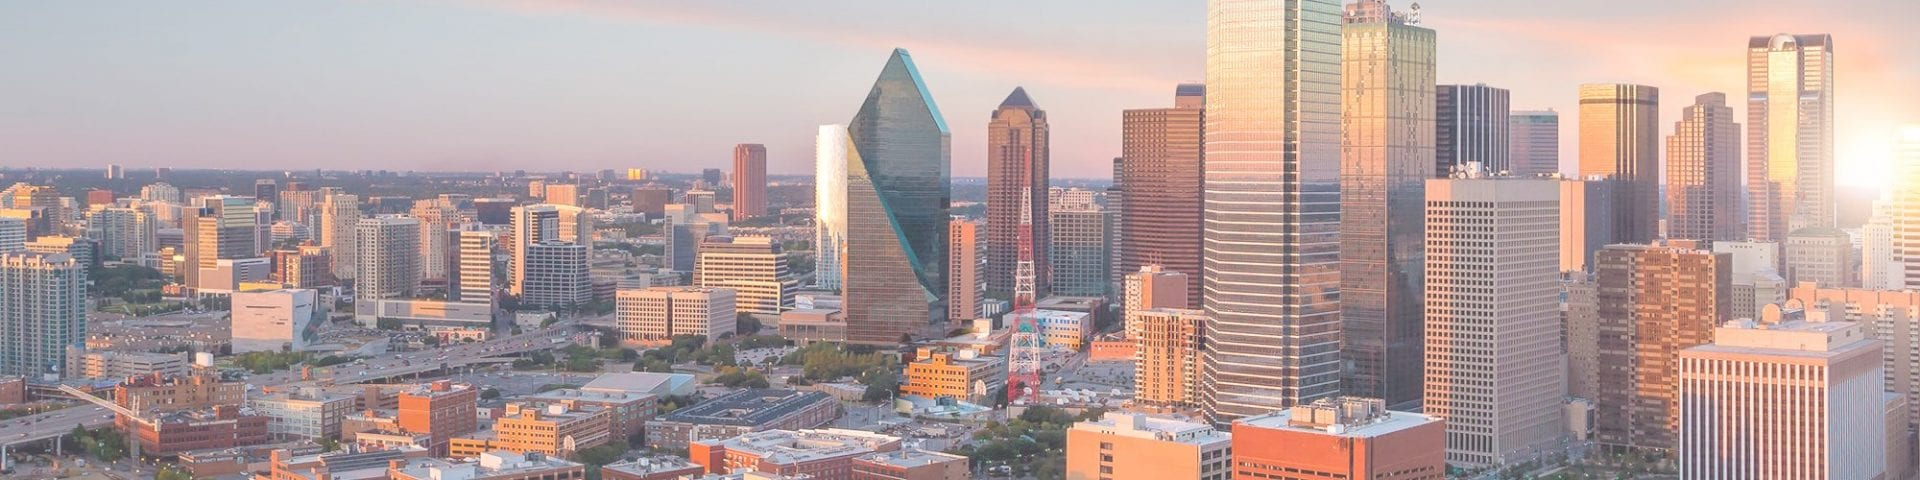 Dallas/Fort Worth Indoor Air Quality (IAQ) Surveys in High-Rise Commercial/Residential Buildings